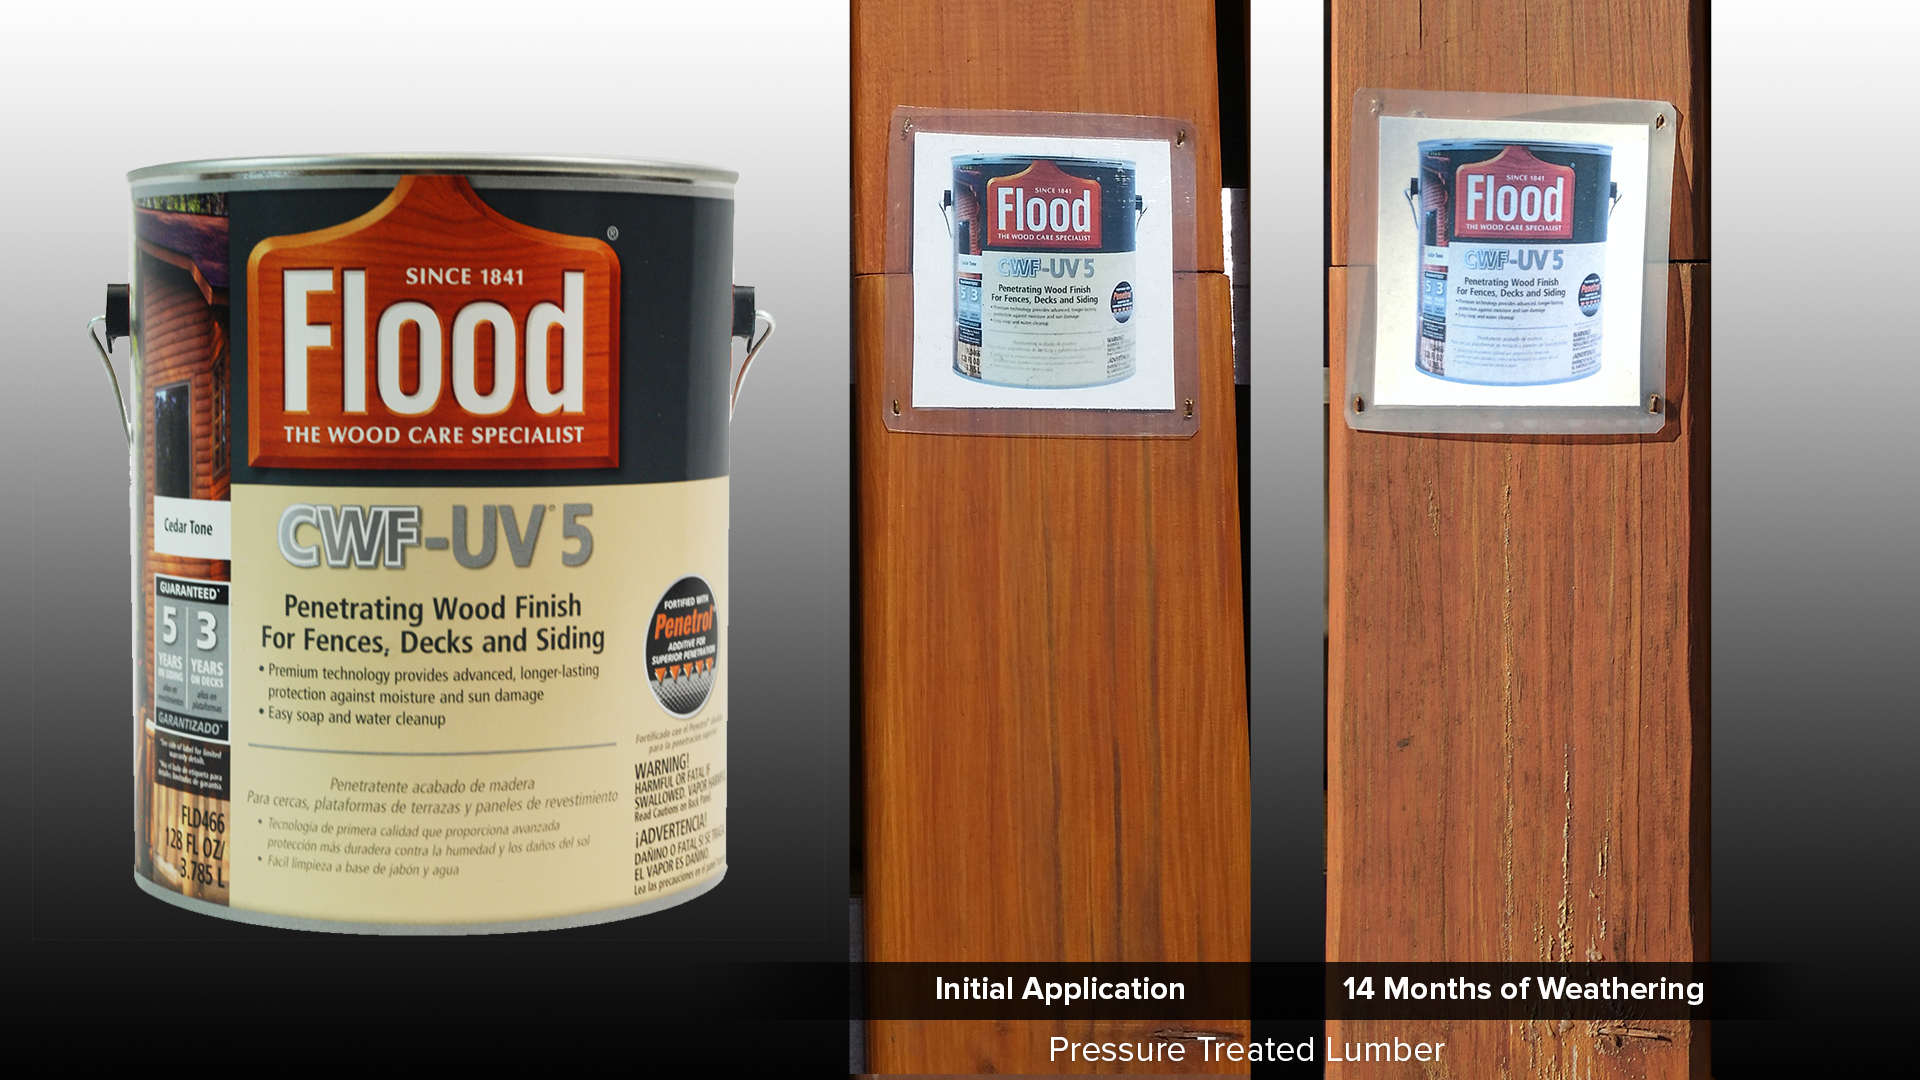 Flood CWF Stain Review- Reviews & Ratings for Top Deck Stains on flood house stain, flood fence stain, flood stain colors, flood semi-transparent stain, flood waterproof stain, flood solid stain, flood deck stain, flood concrete stain, flood stain products, flood water stain,